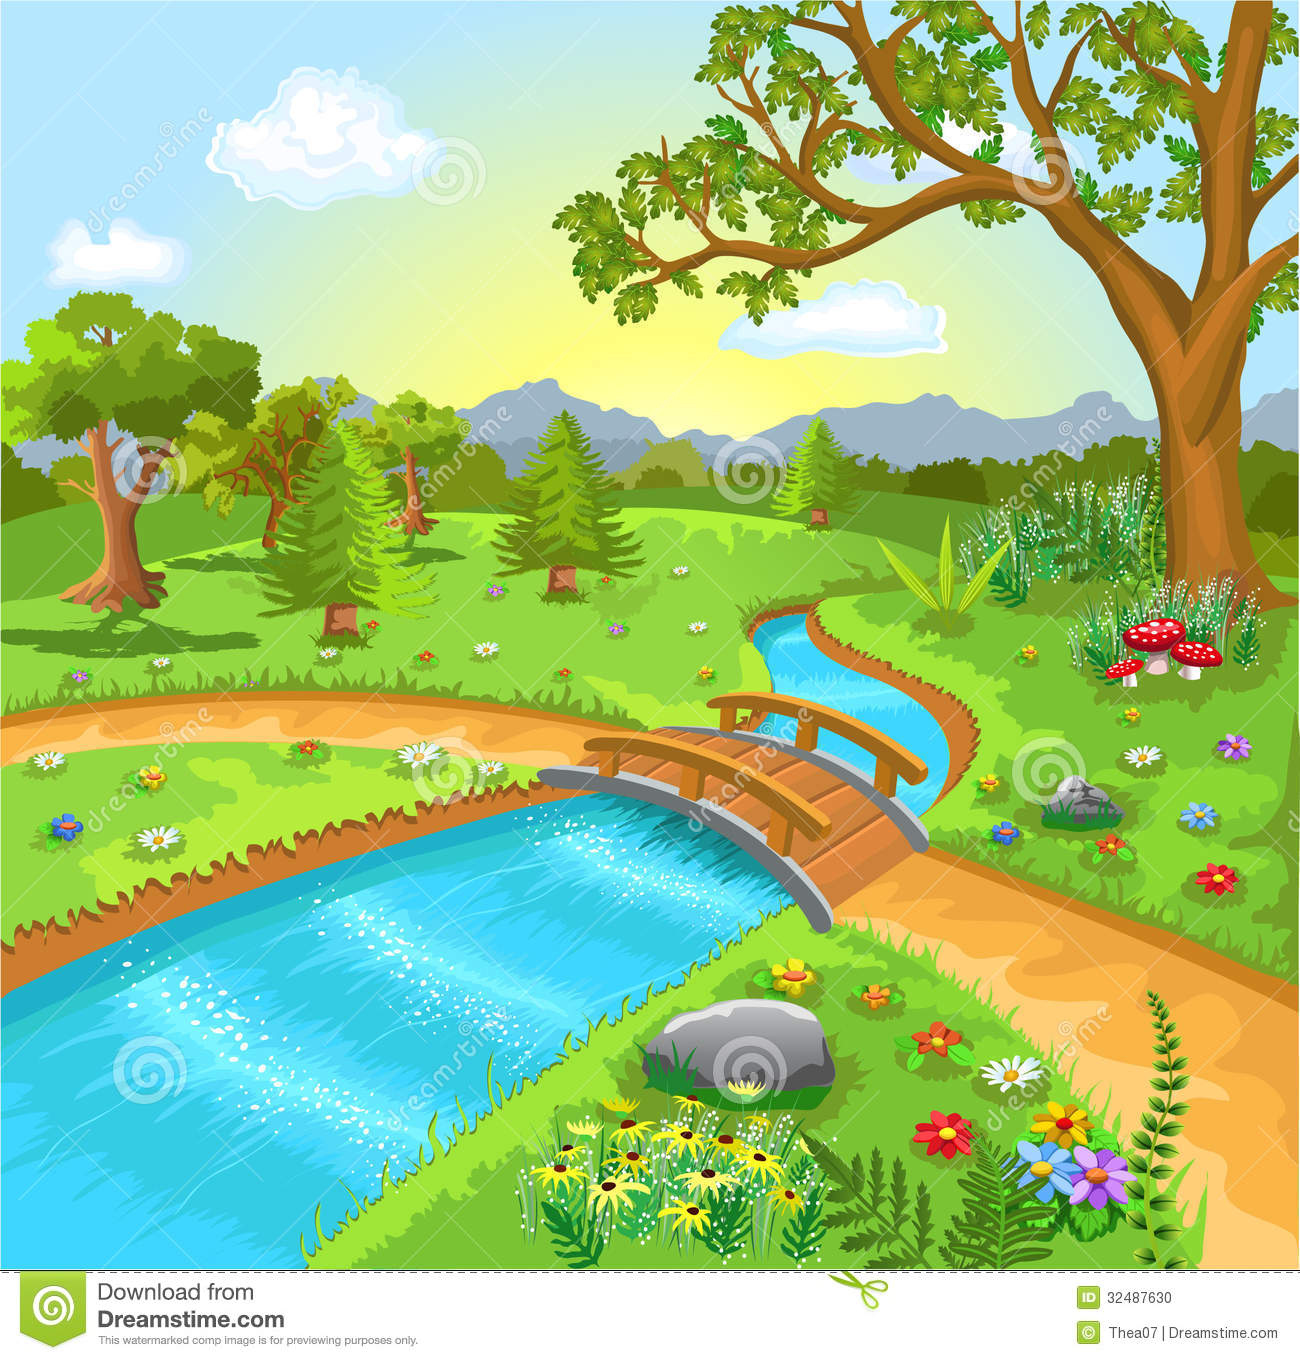 Sream clipart spring water Natural clipart Clipground Natural clipart